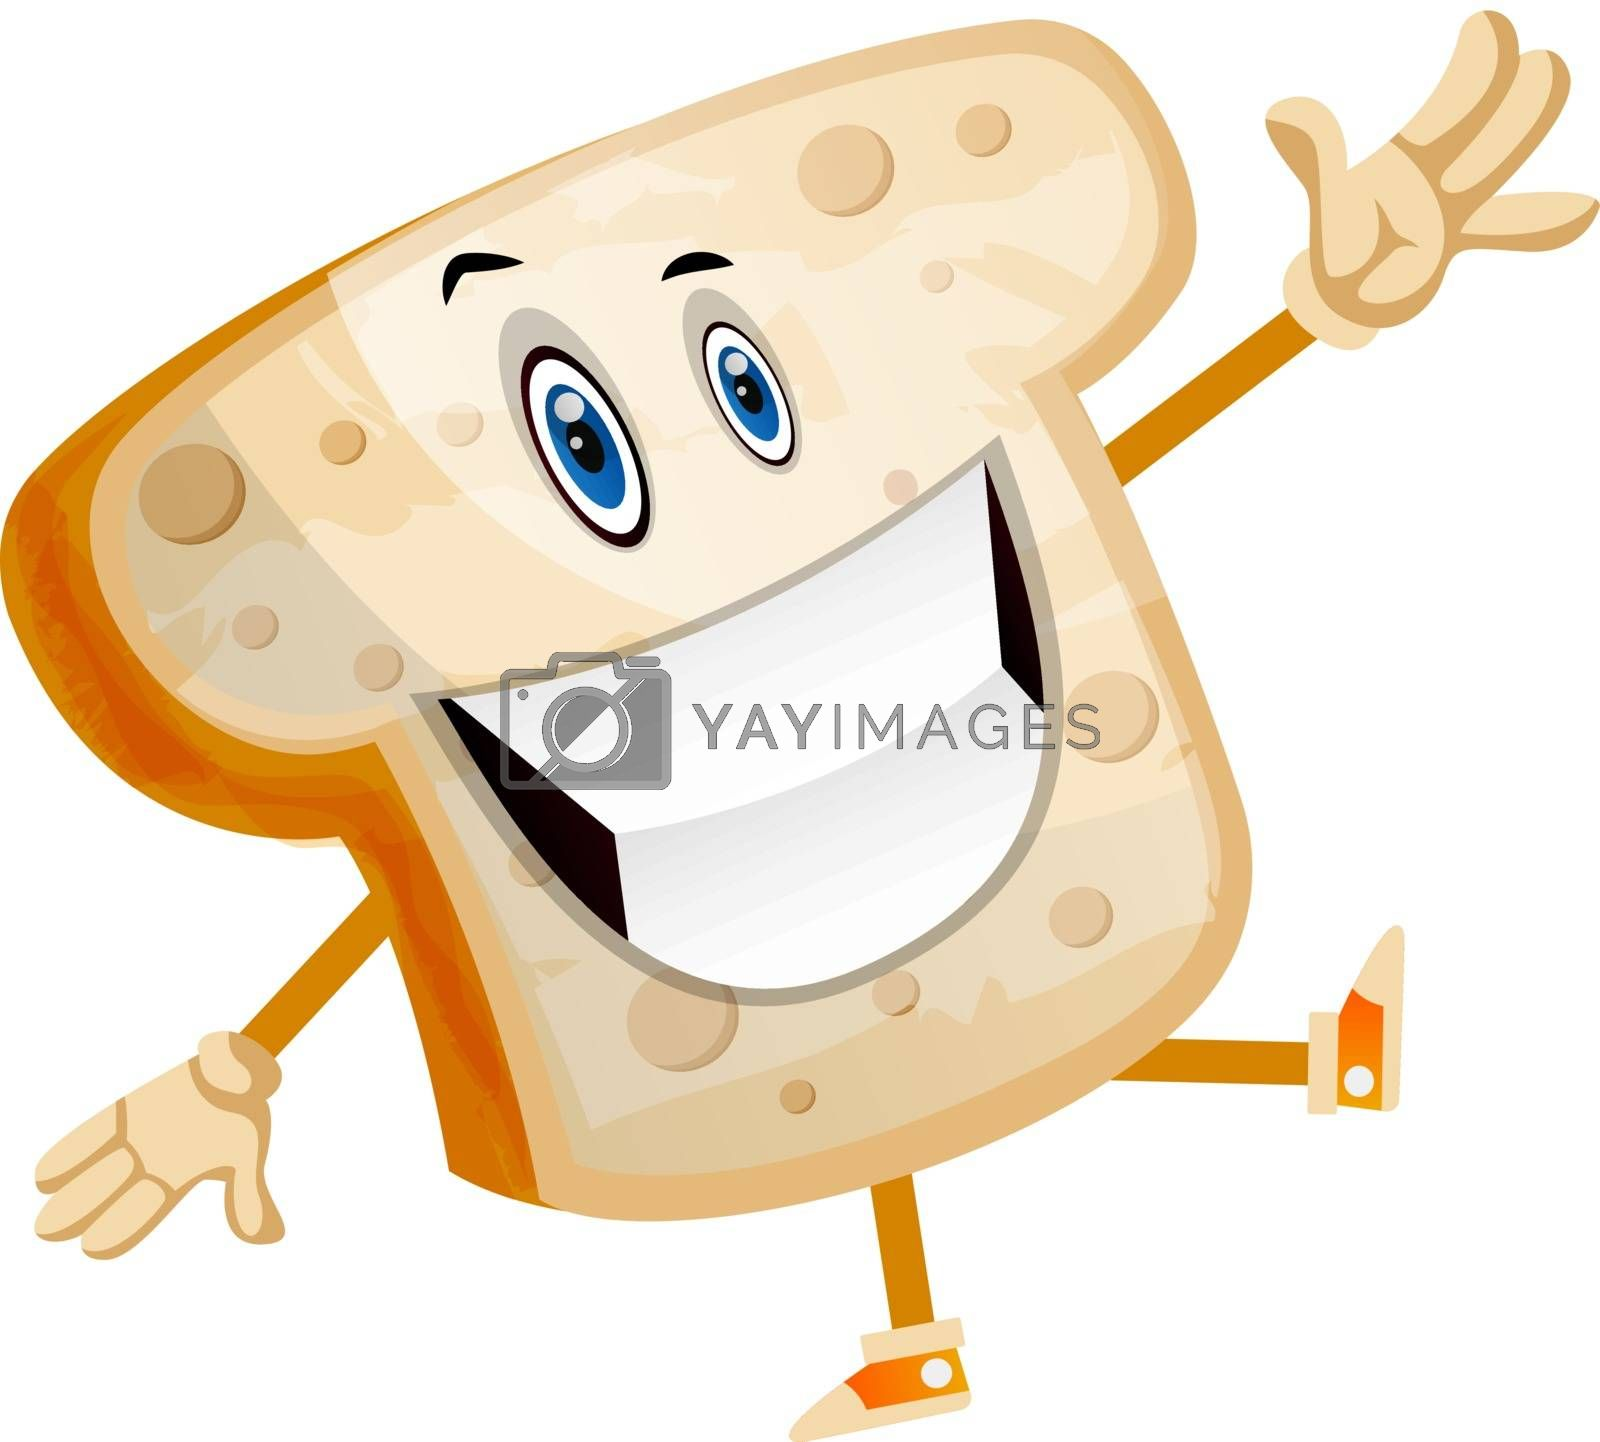 Royalty free image of Smiling Bread illustration vector on white background by Morphart